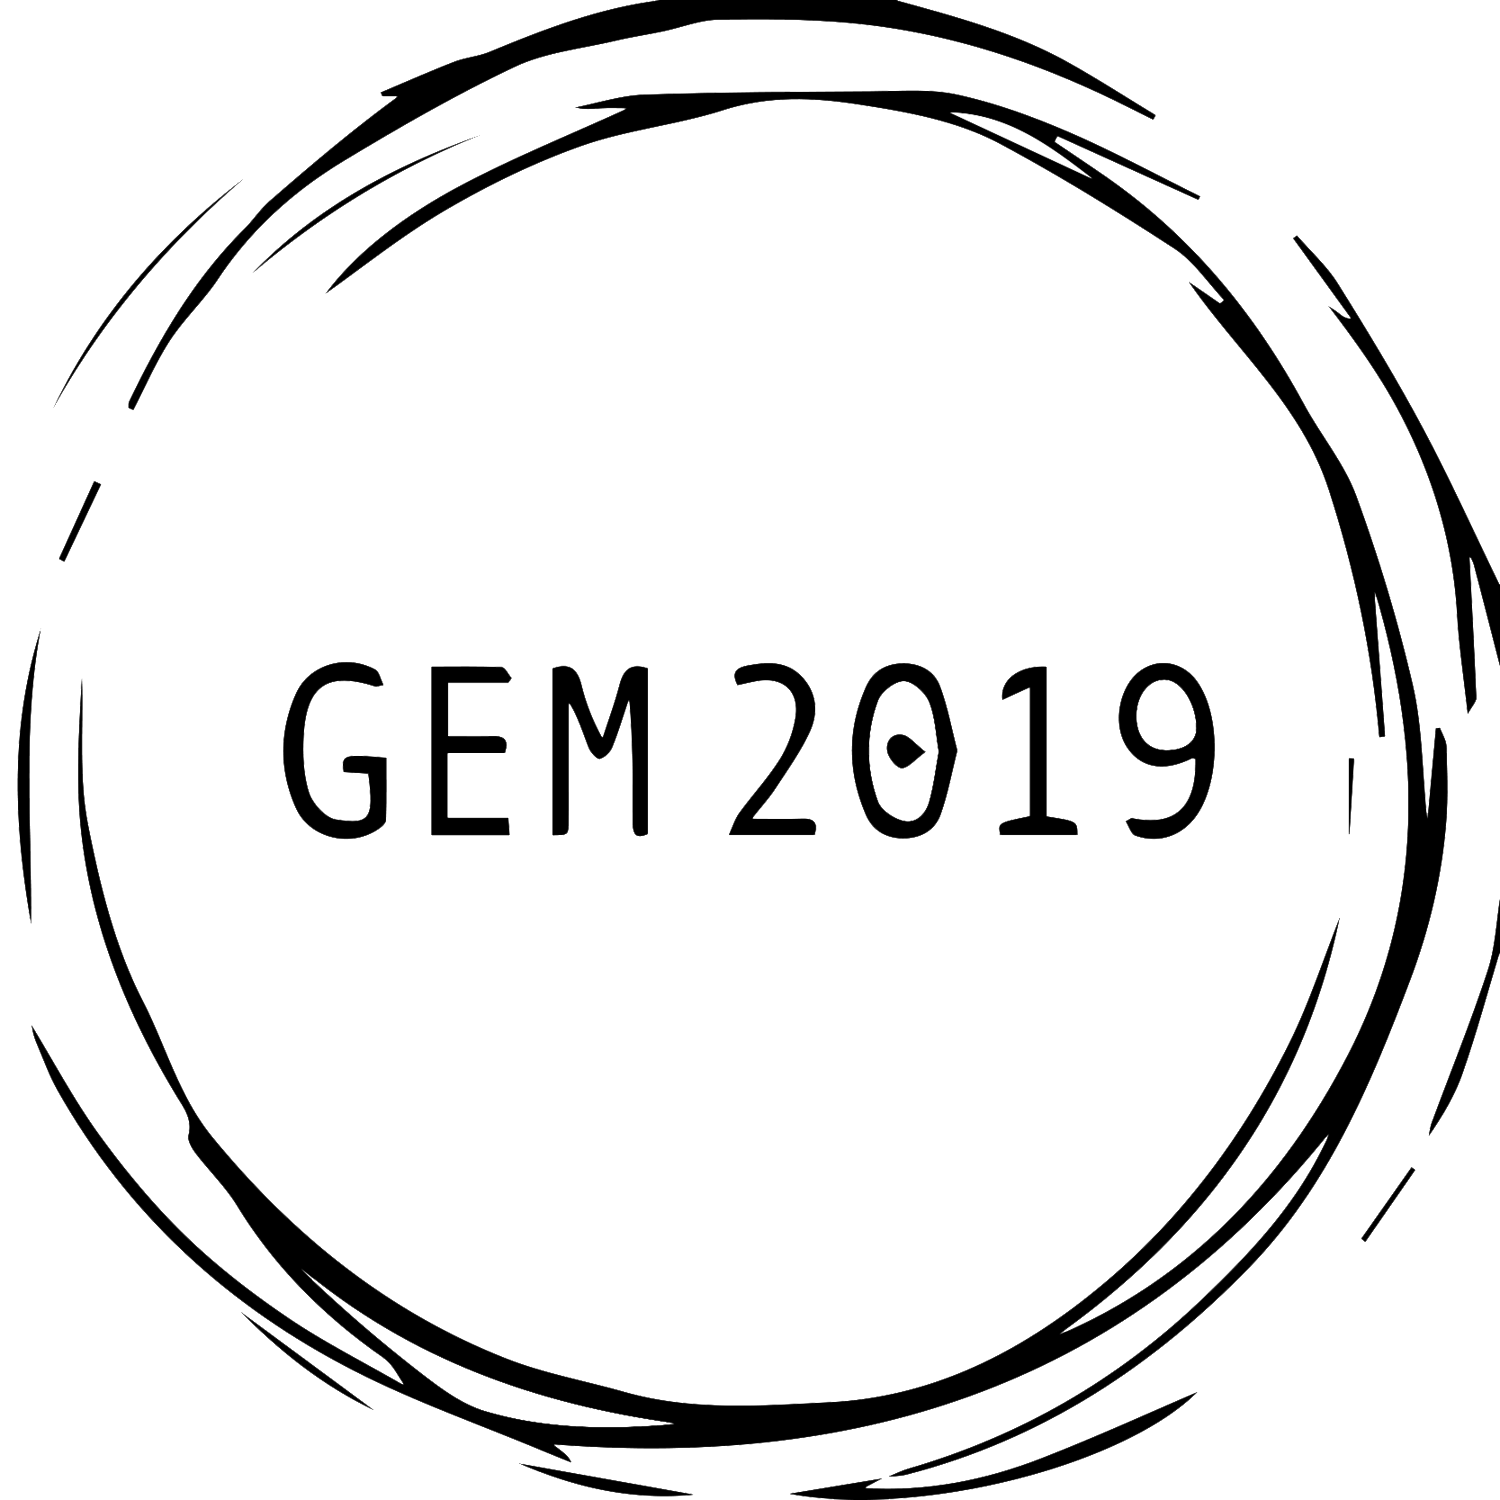 IEEE Games, Entertainment, & Media 2019